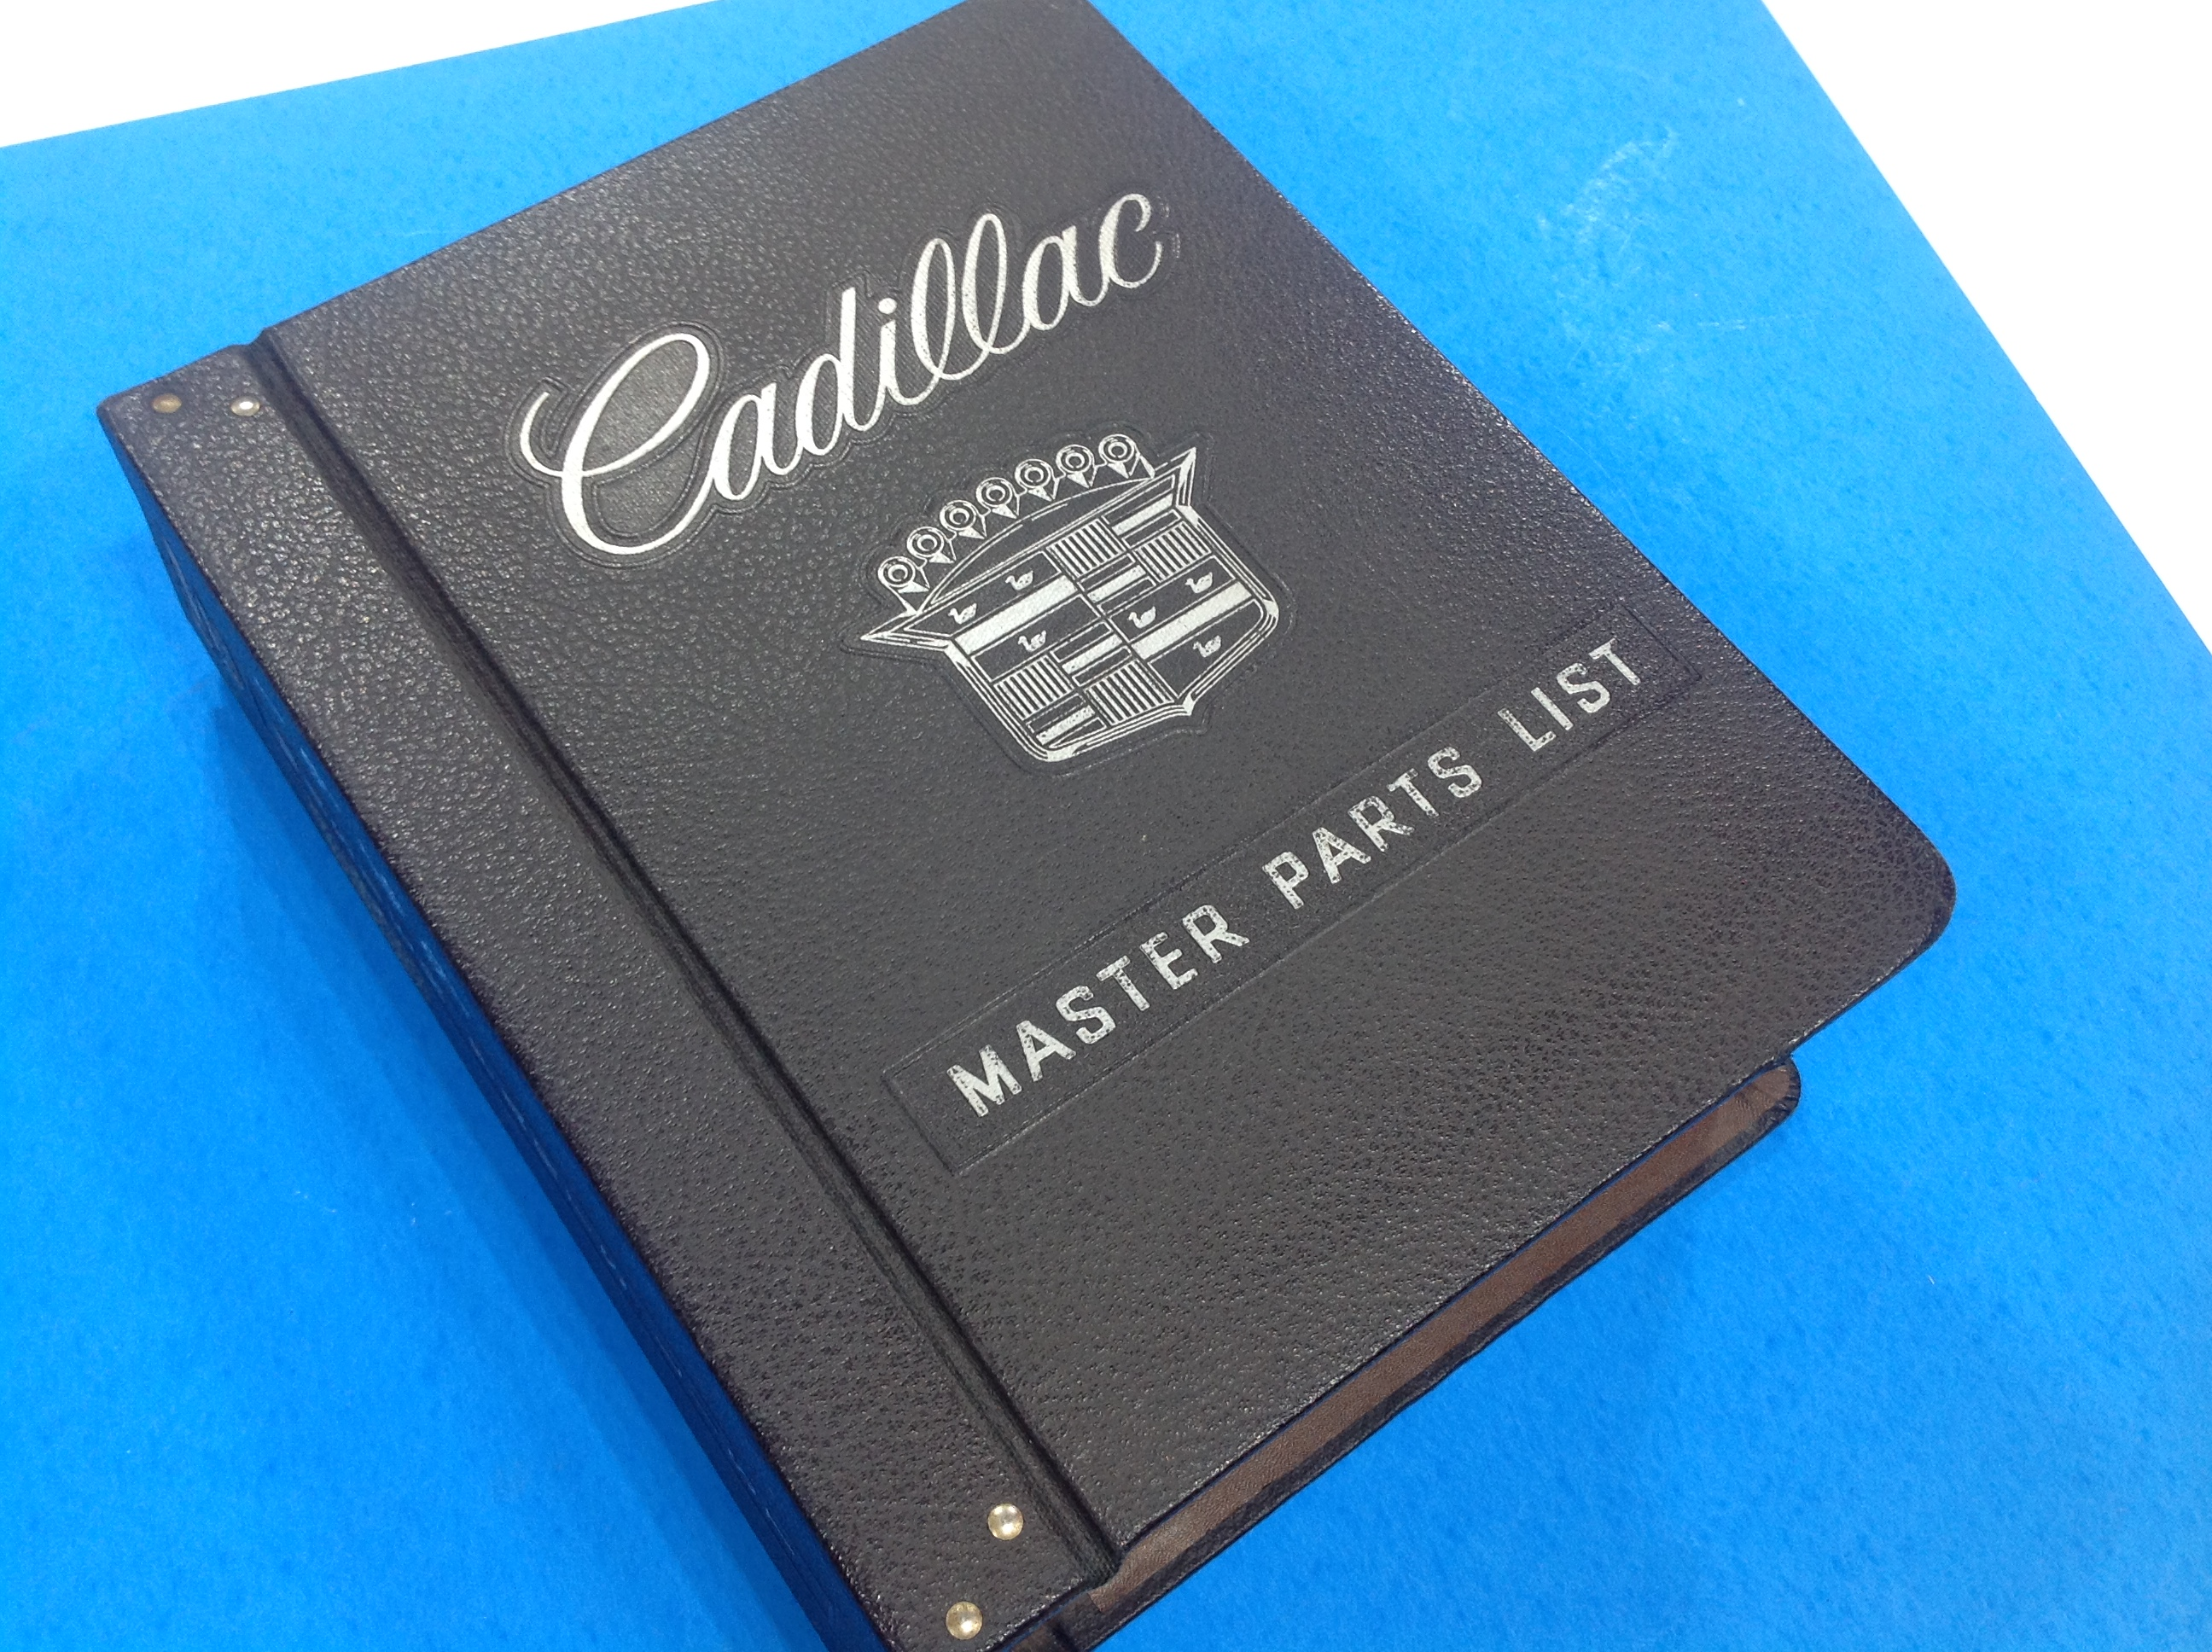 1946 to 1969 – Cadillac Master Parts Book and Illustrations – SOLD